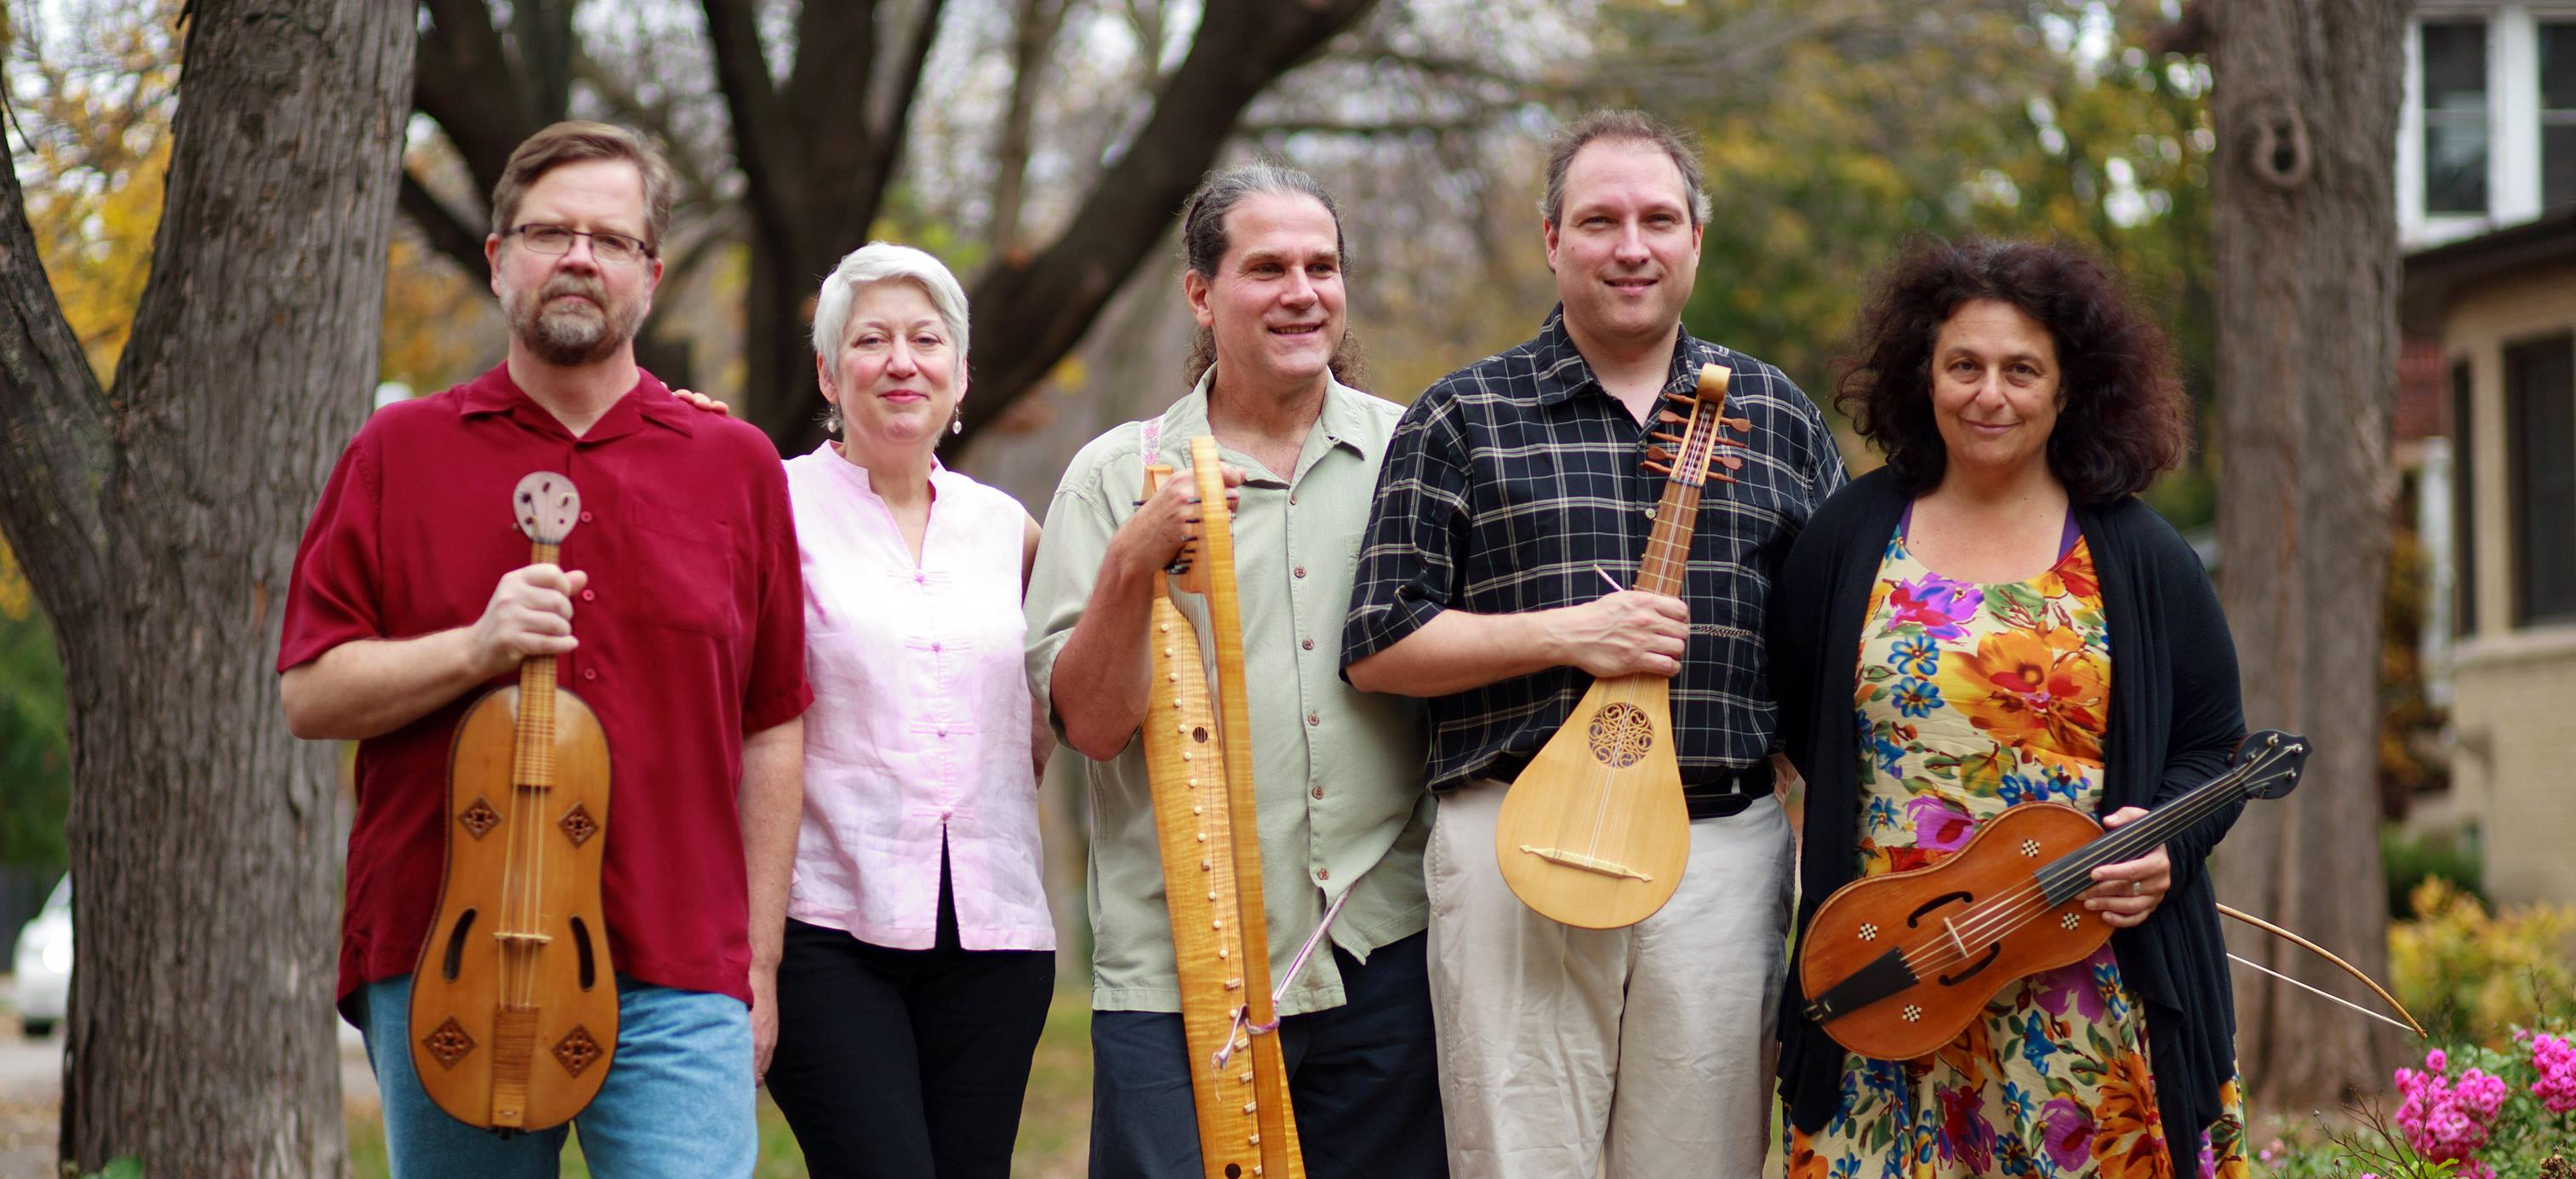 Early Music Now Presents Medieval Music and Art Inspired by Gratitude